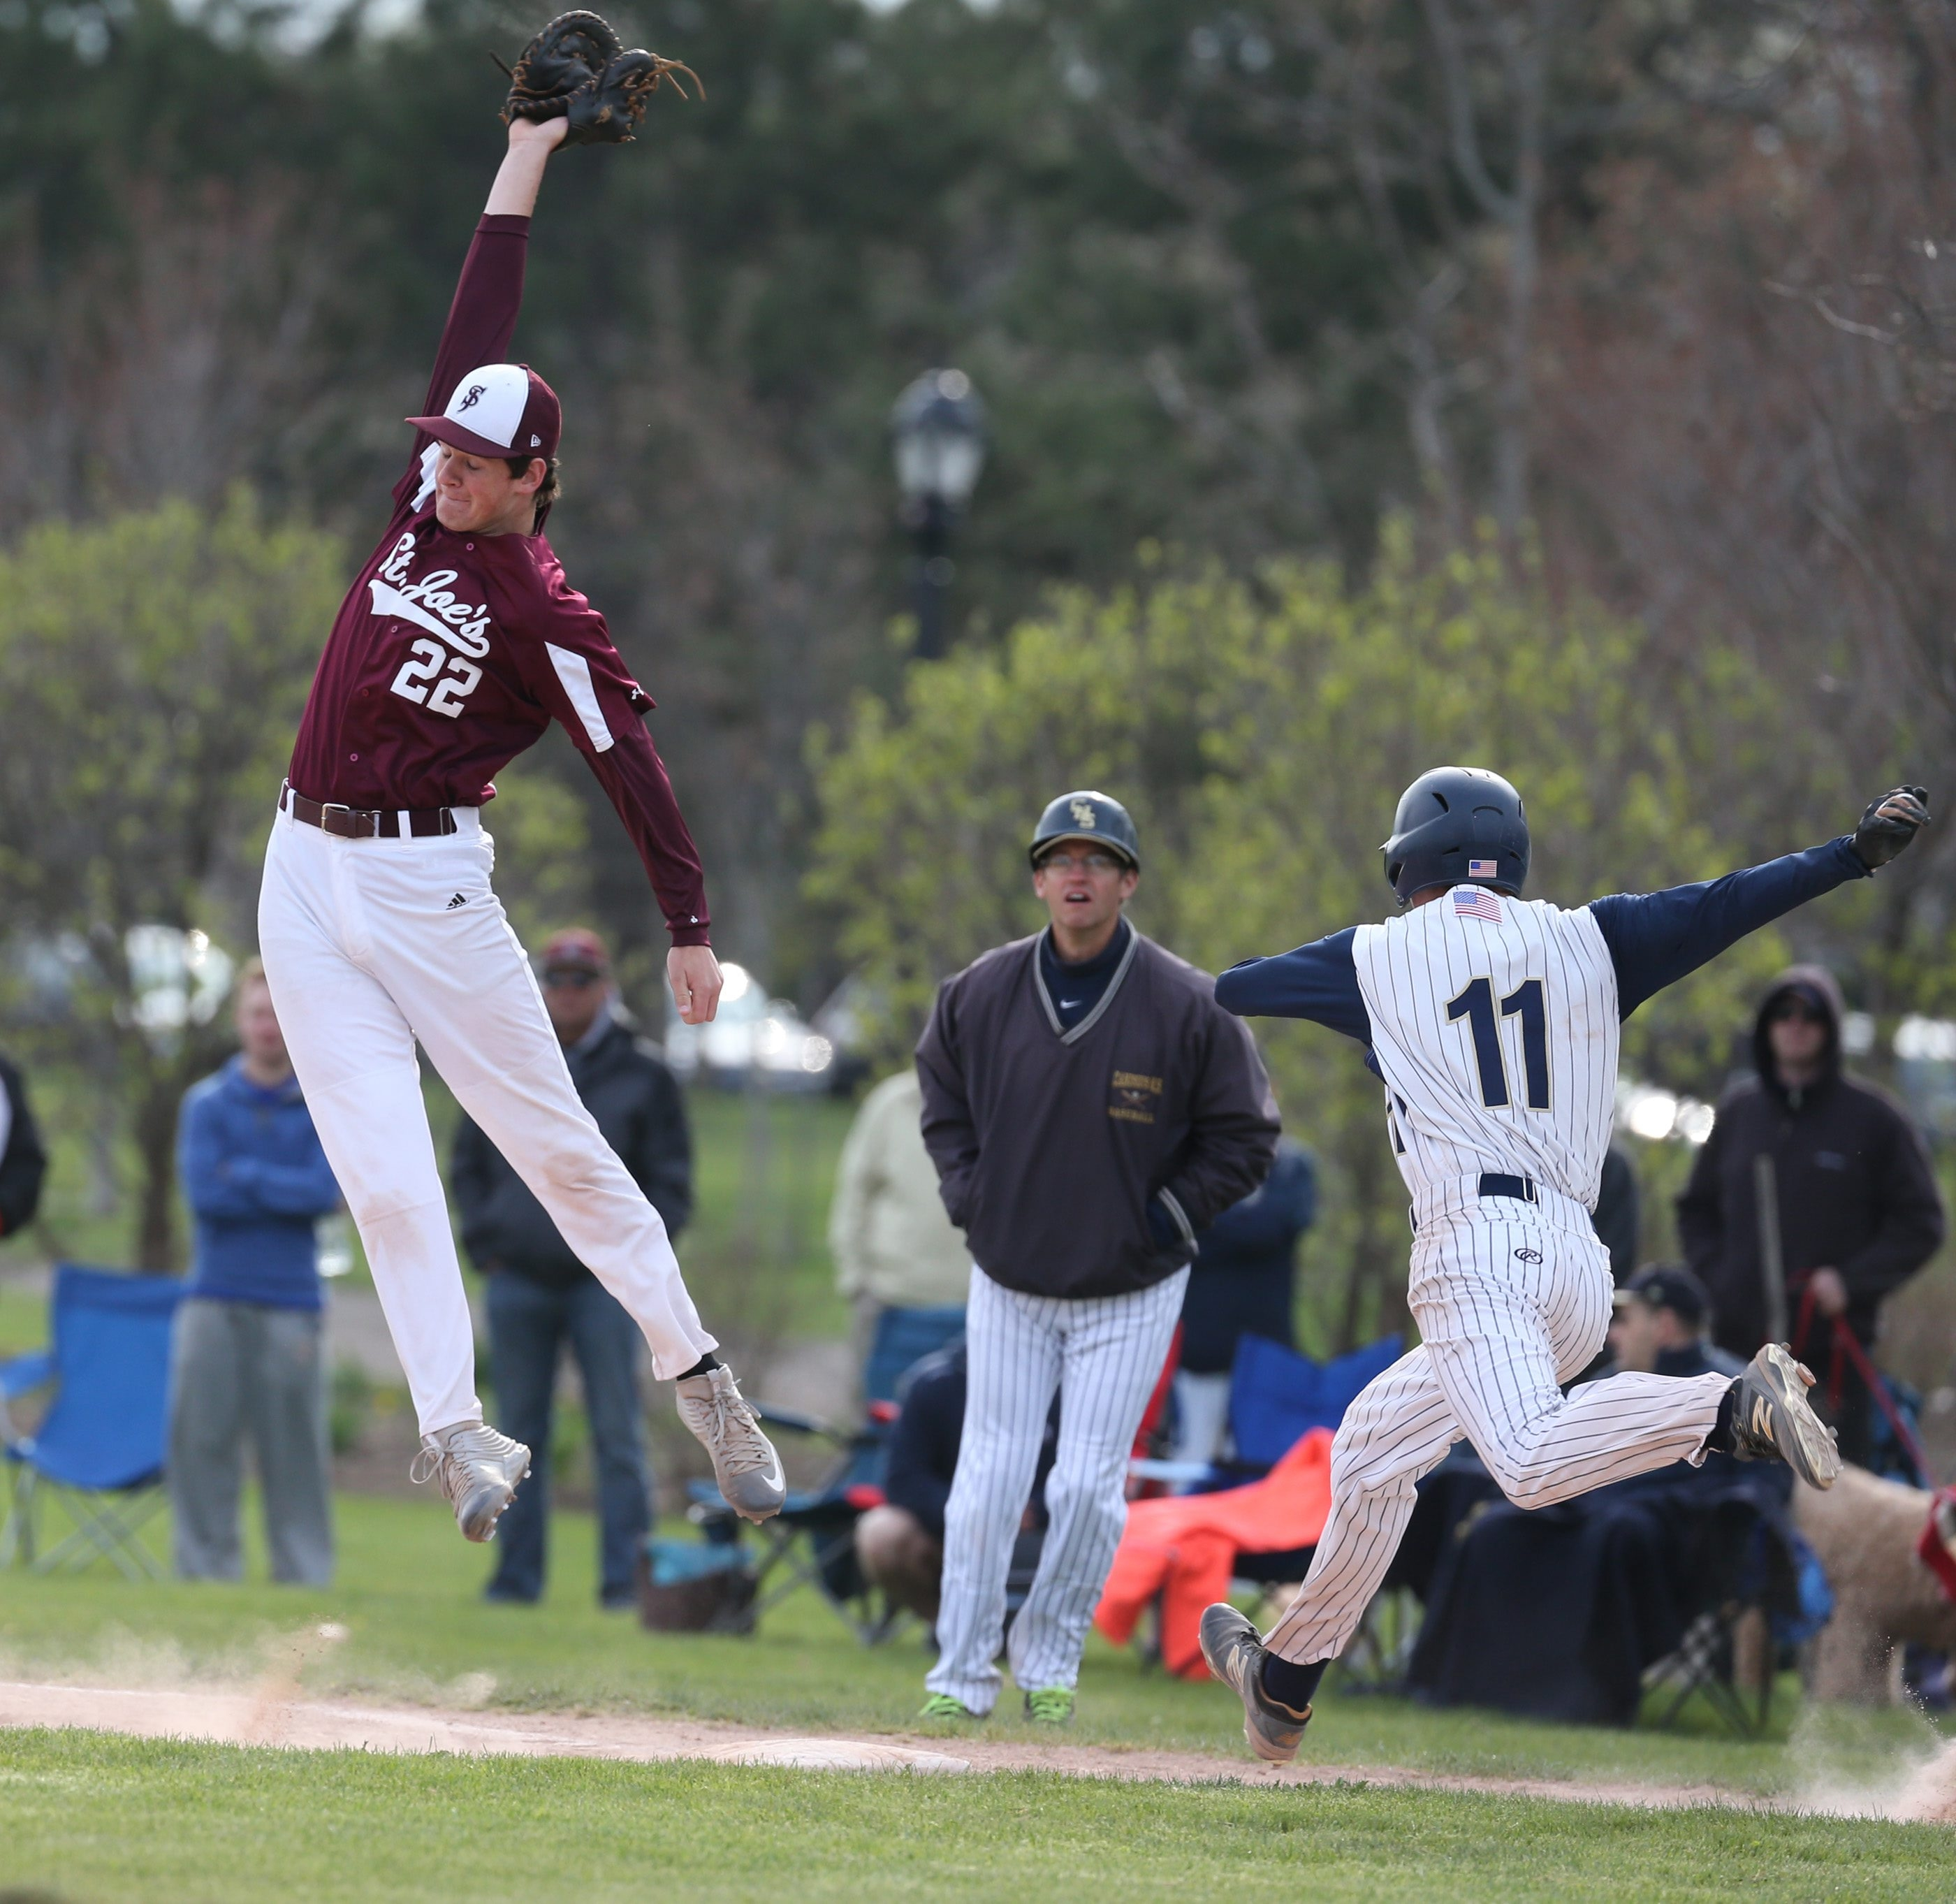 Michael Gabriele (11) of Canisius beat out an infield single as St. Joe's first baseman Anthony Brophy leaps for the high throw in the fifth inning of Monday's game at Delaware Park.